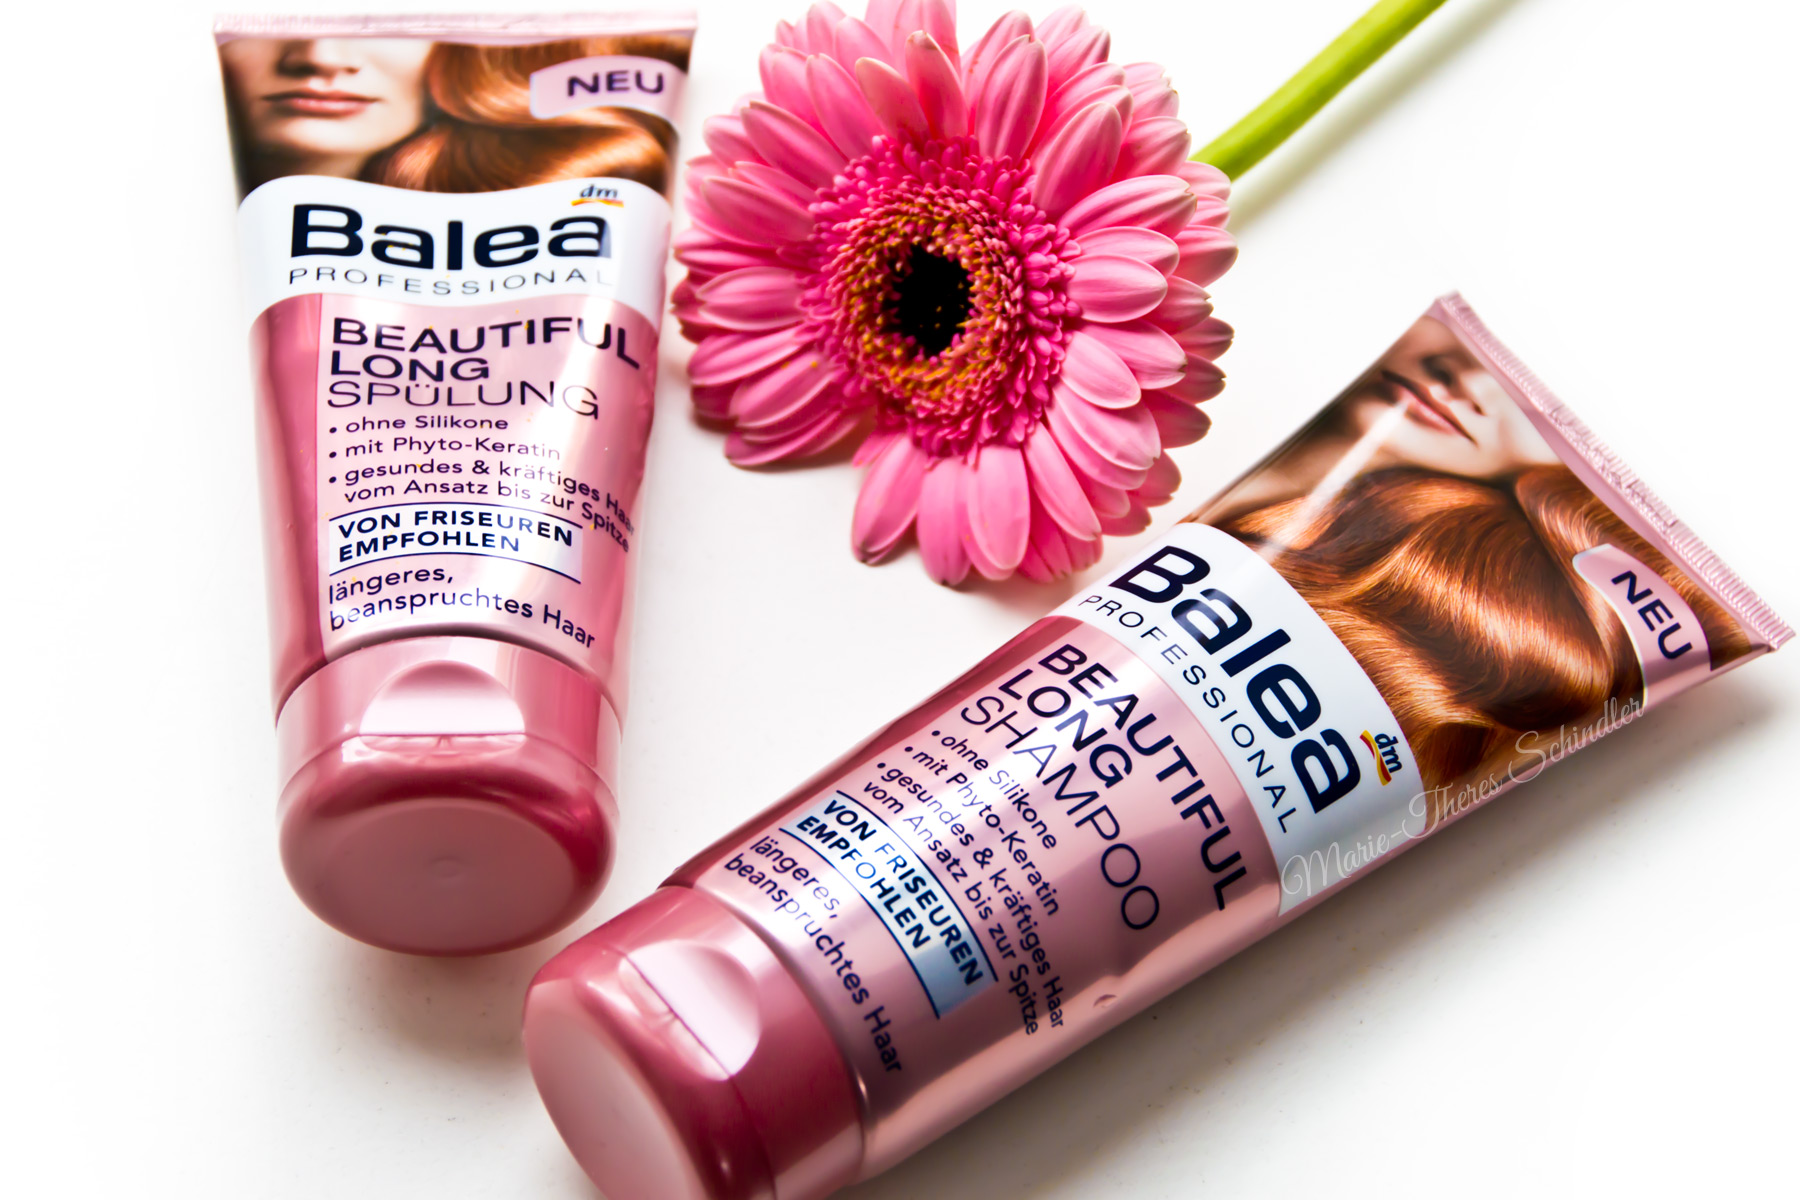 Geliebte Balea Professional - Beautiful Long Shampoo & Spülung | Marie #LY_21